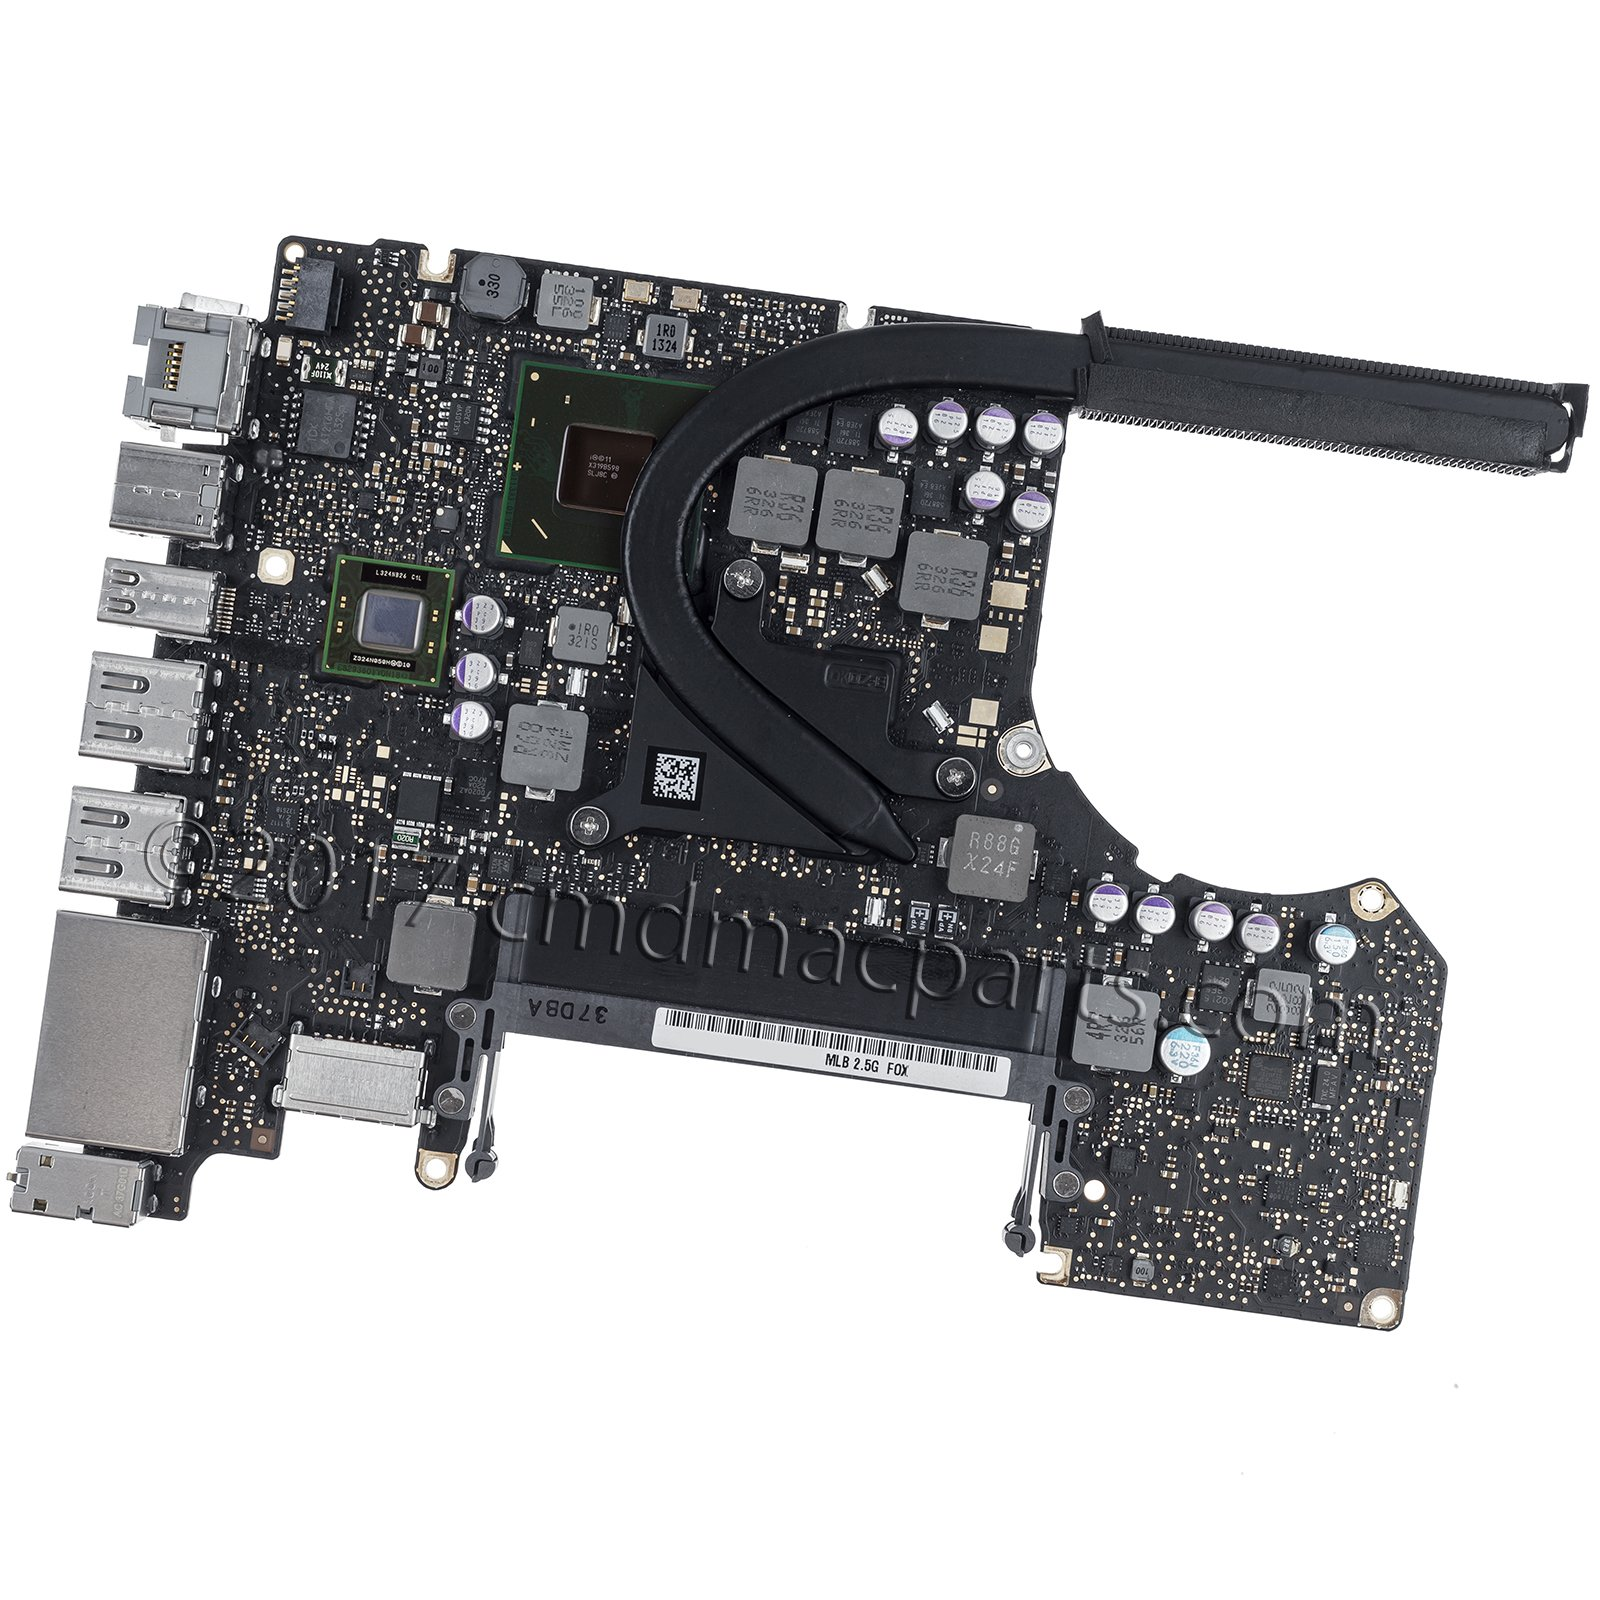 Odyson - Logic Board 2.5GHz Core i5 (i5-3210M) Replacement for MacBook Pro 13'' Unibody A1278 (Mid 2012)